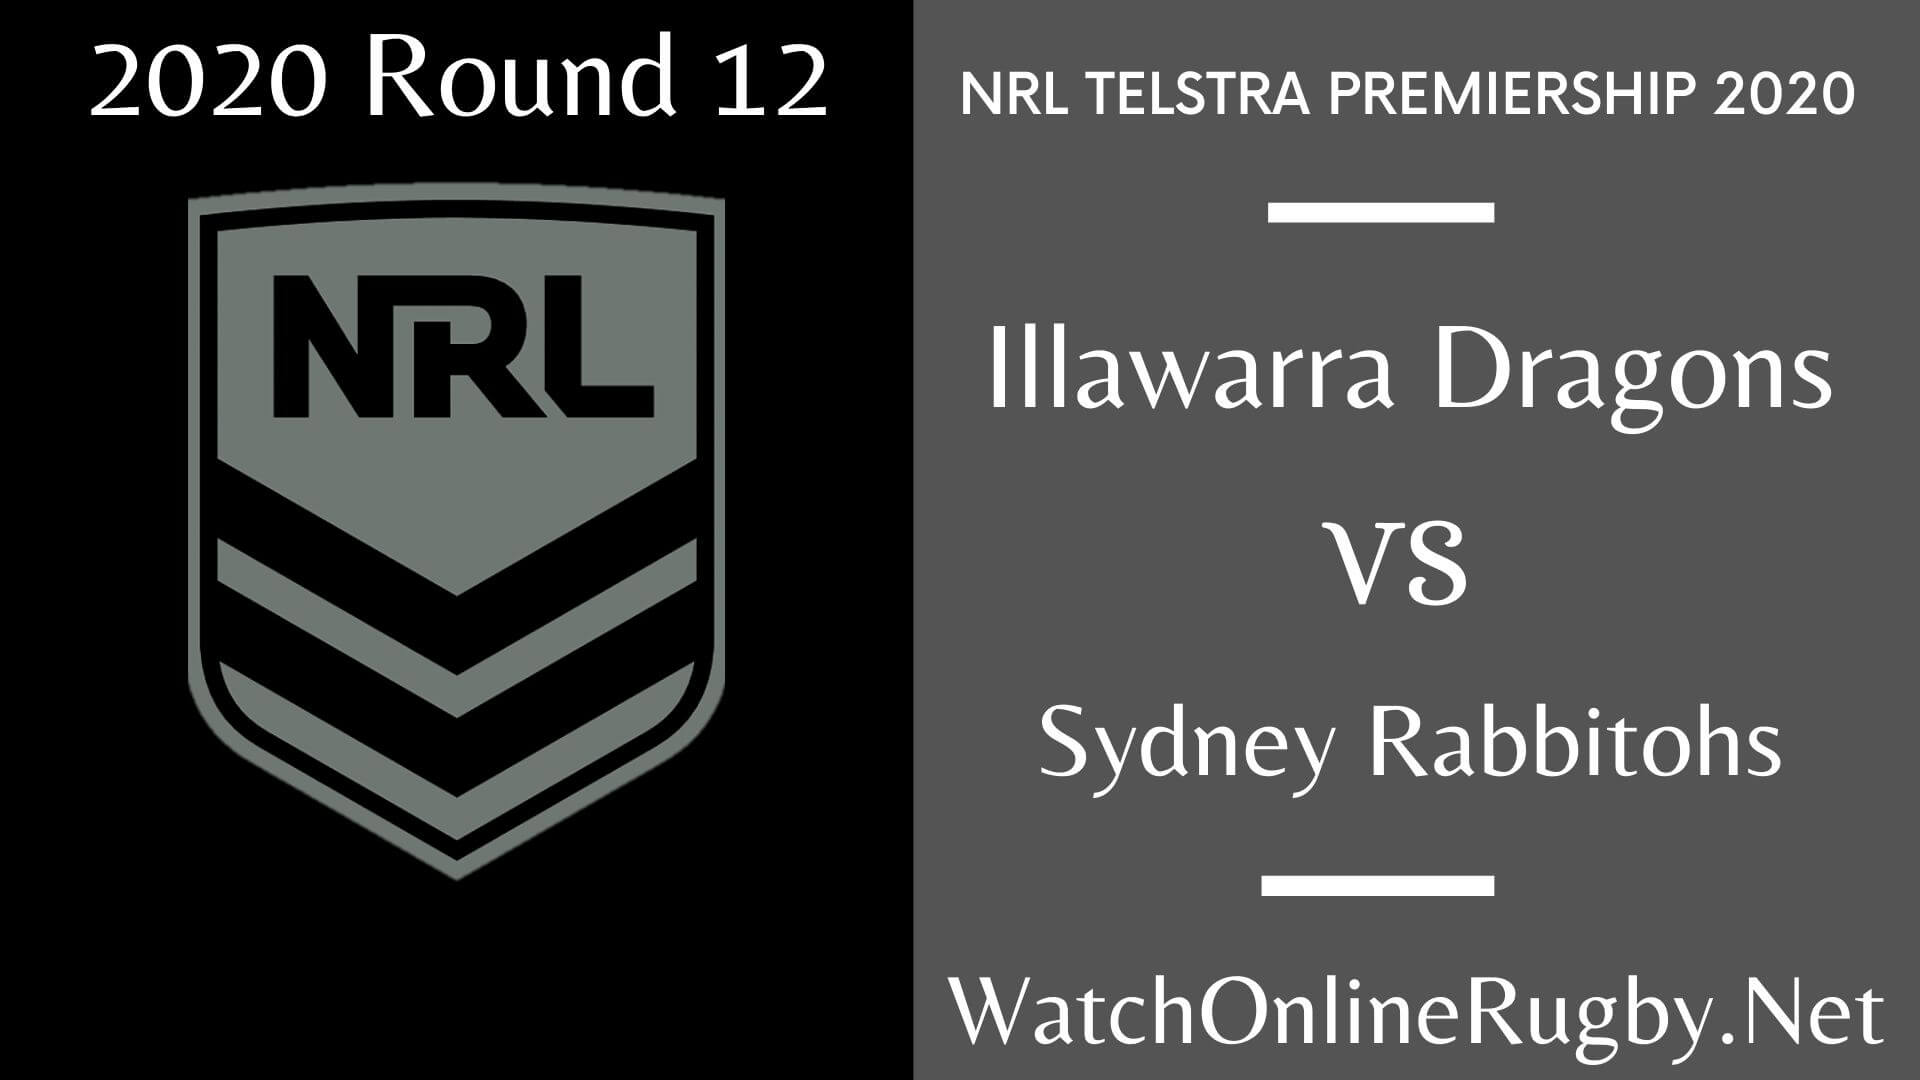 Dragons Vs Rabbitohs Highlights 2020 Round 12 Nrl Rugby